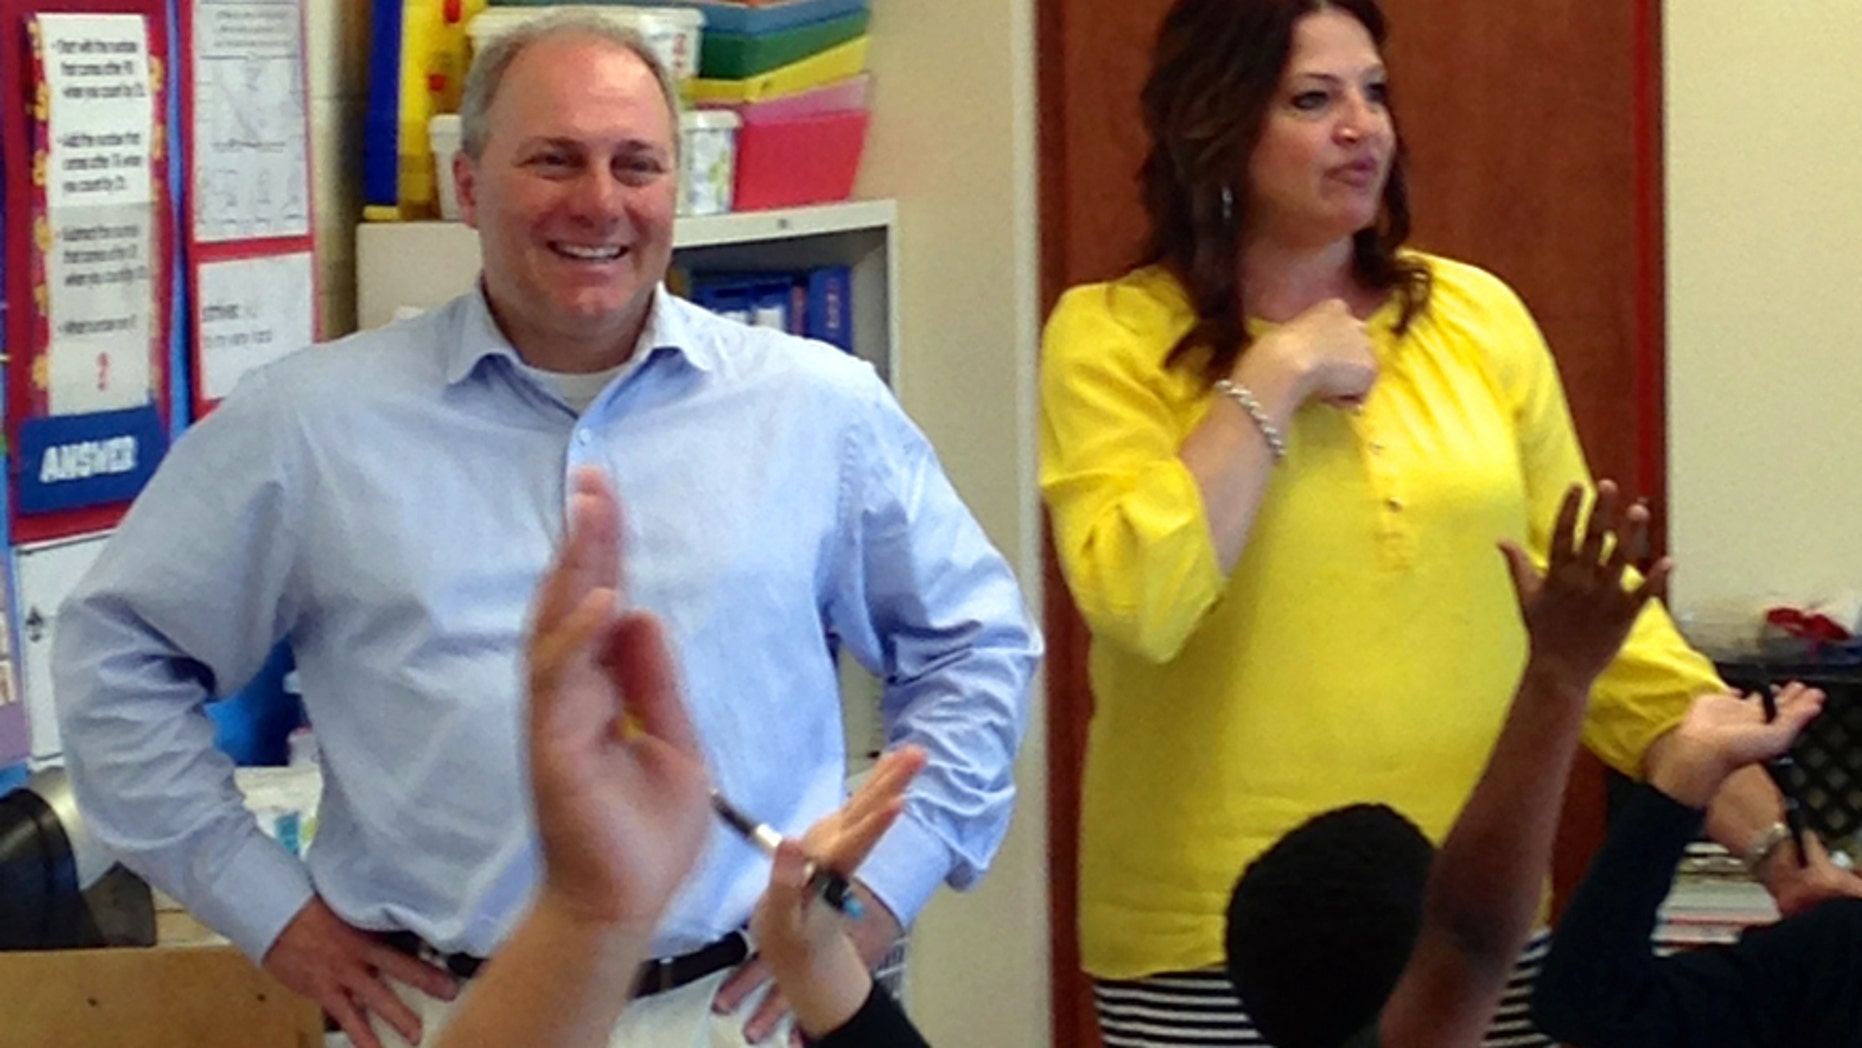 Congressman Scalise touring Hynes Charter School in his hometown of New Orleans on May 2, 2014.